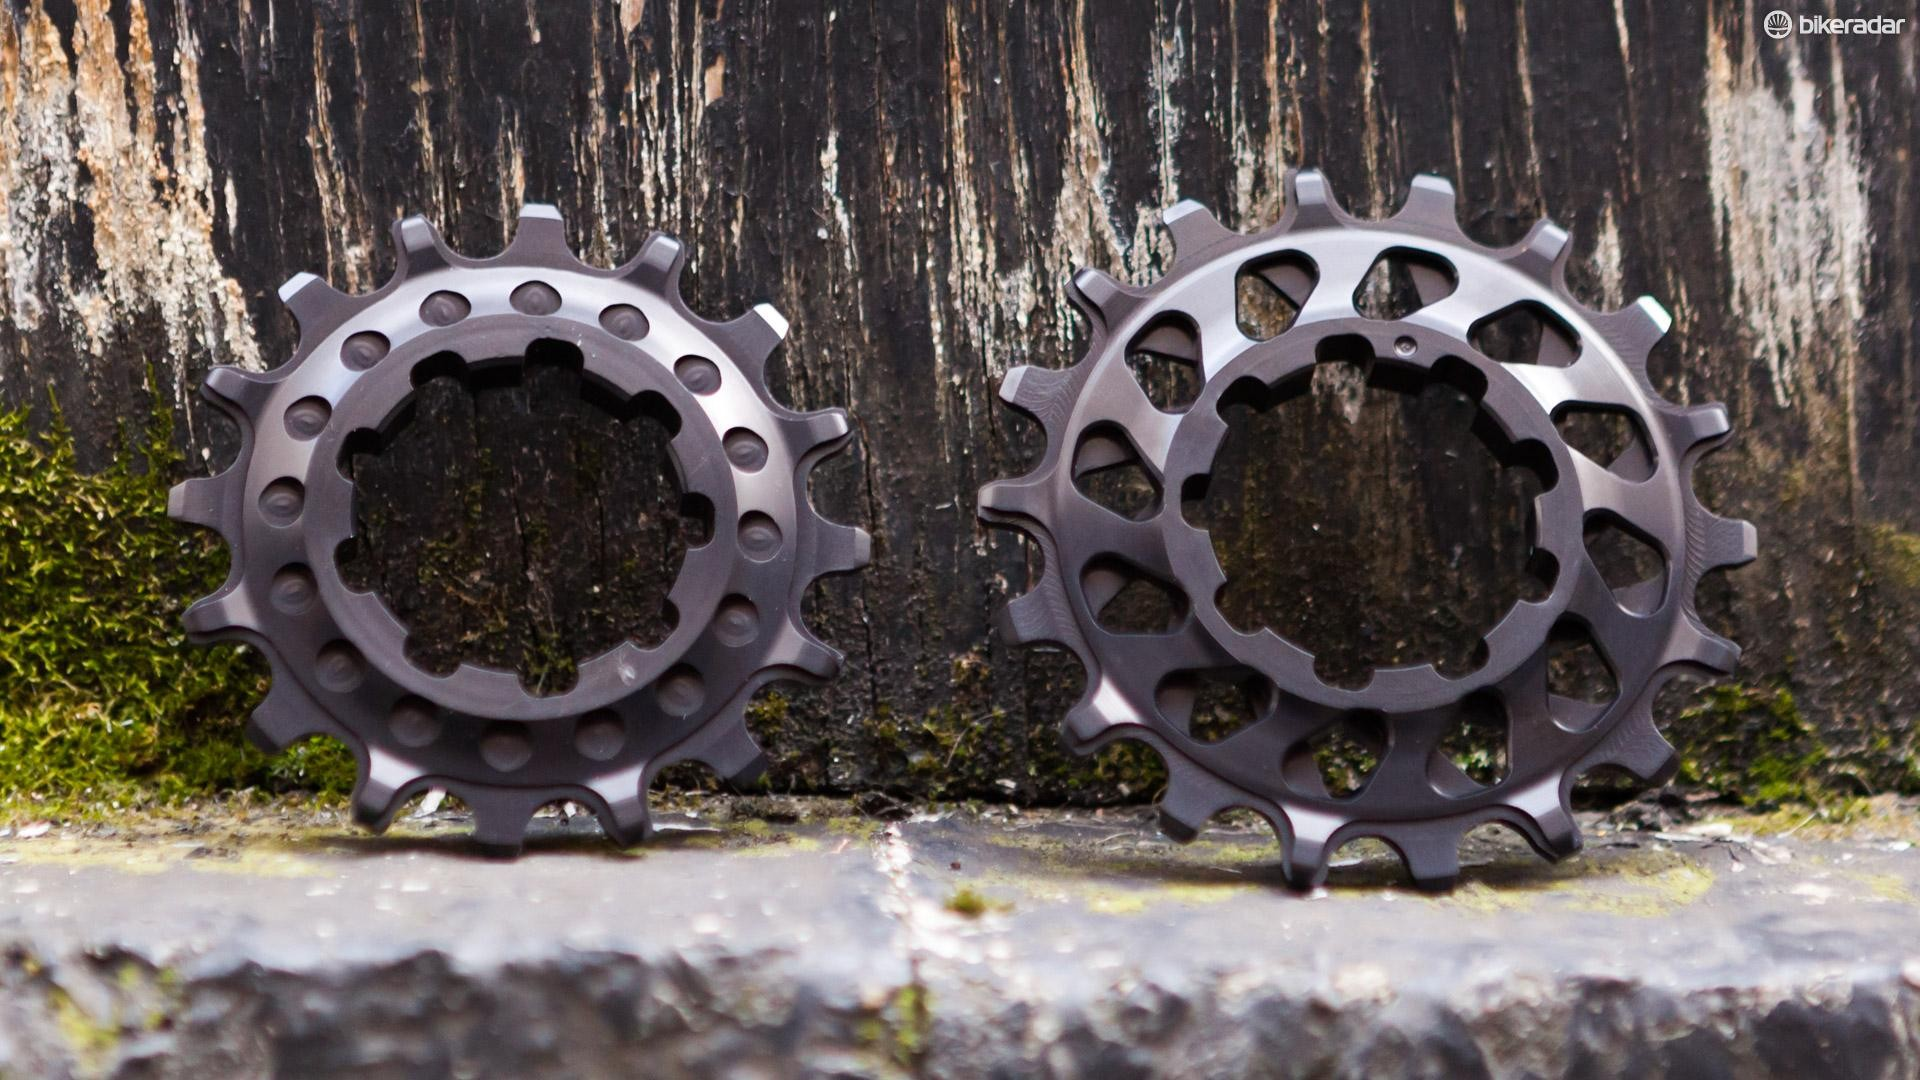 AbsoluteBlack SS Cogs: 16t on the left, 18t on the right